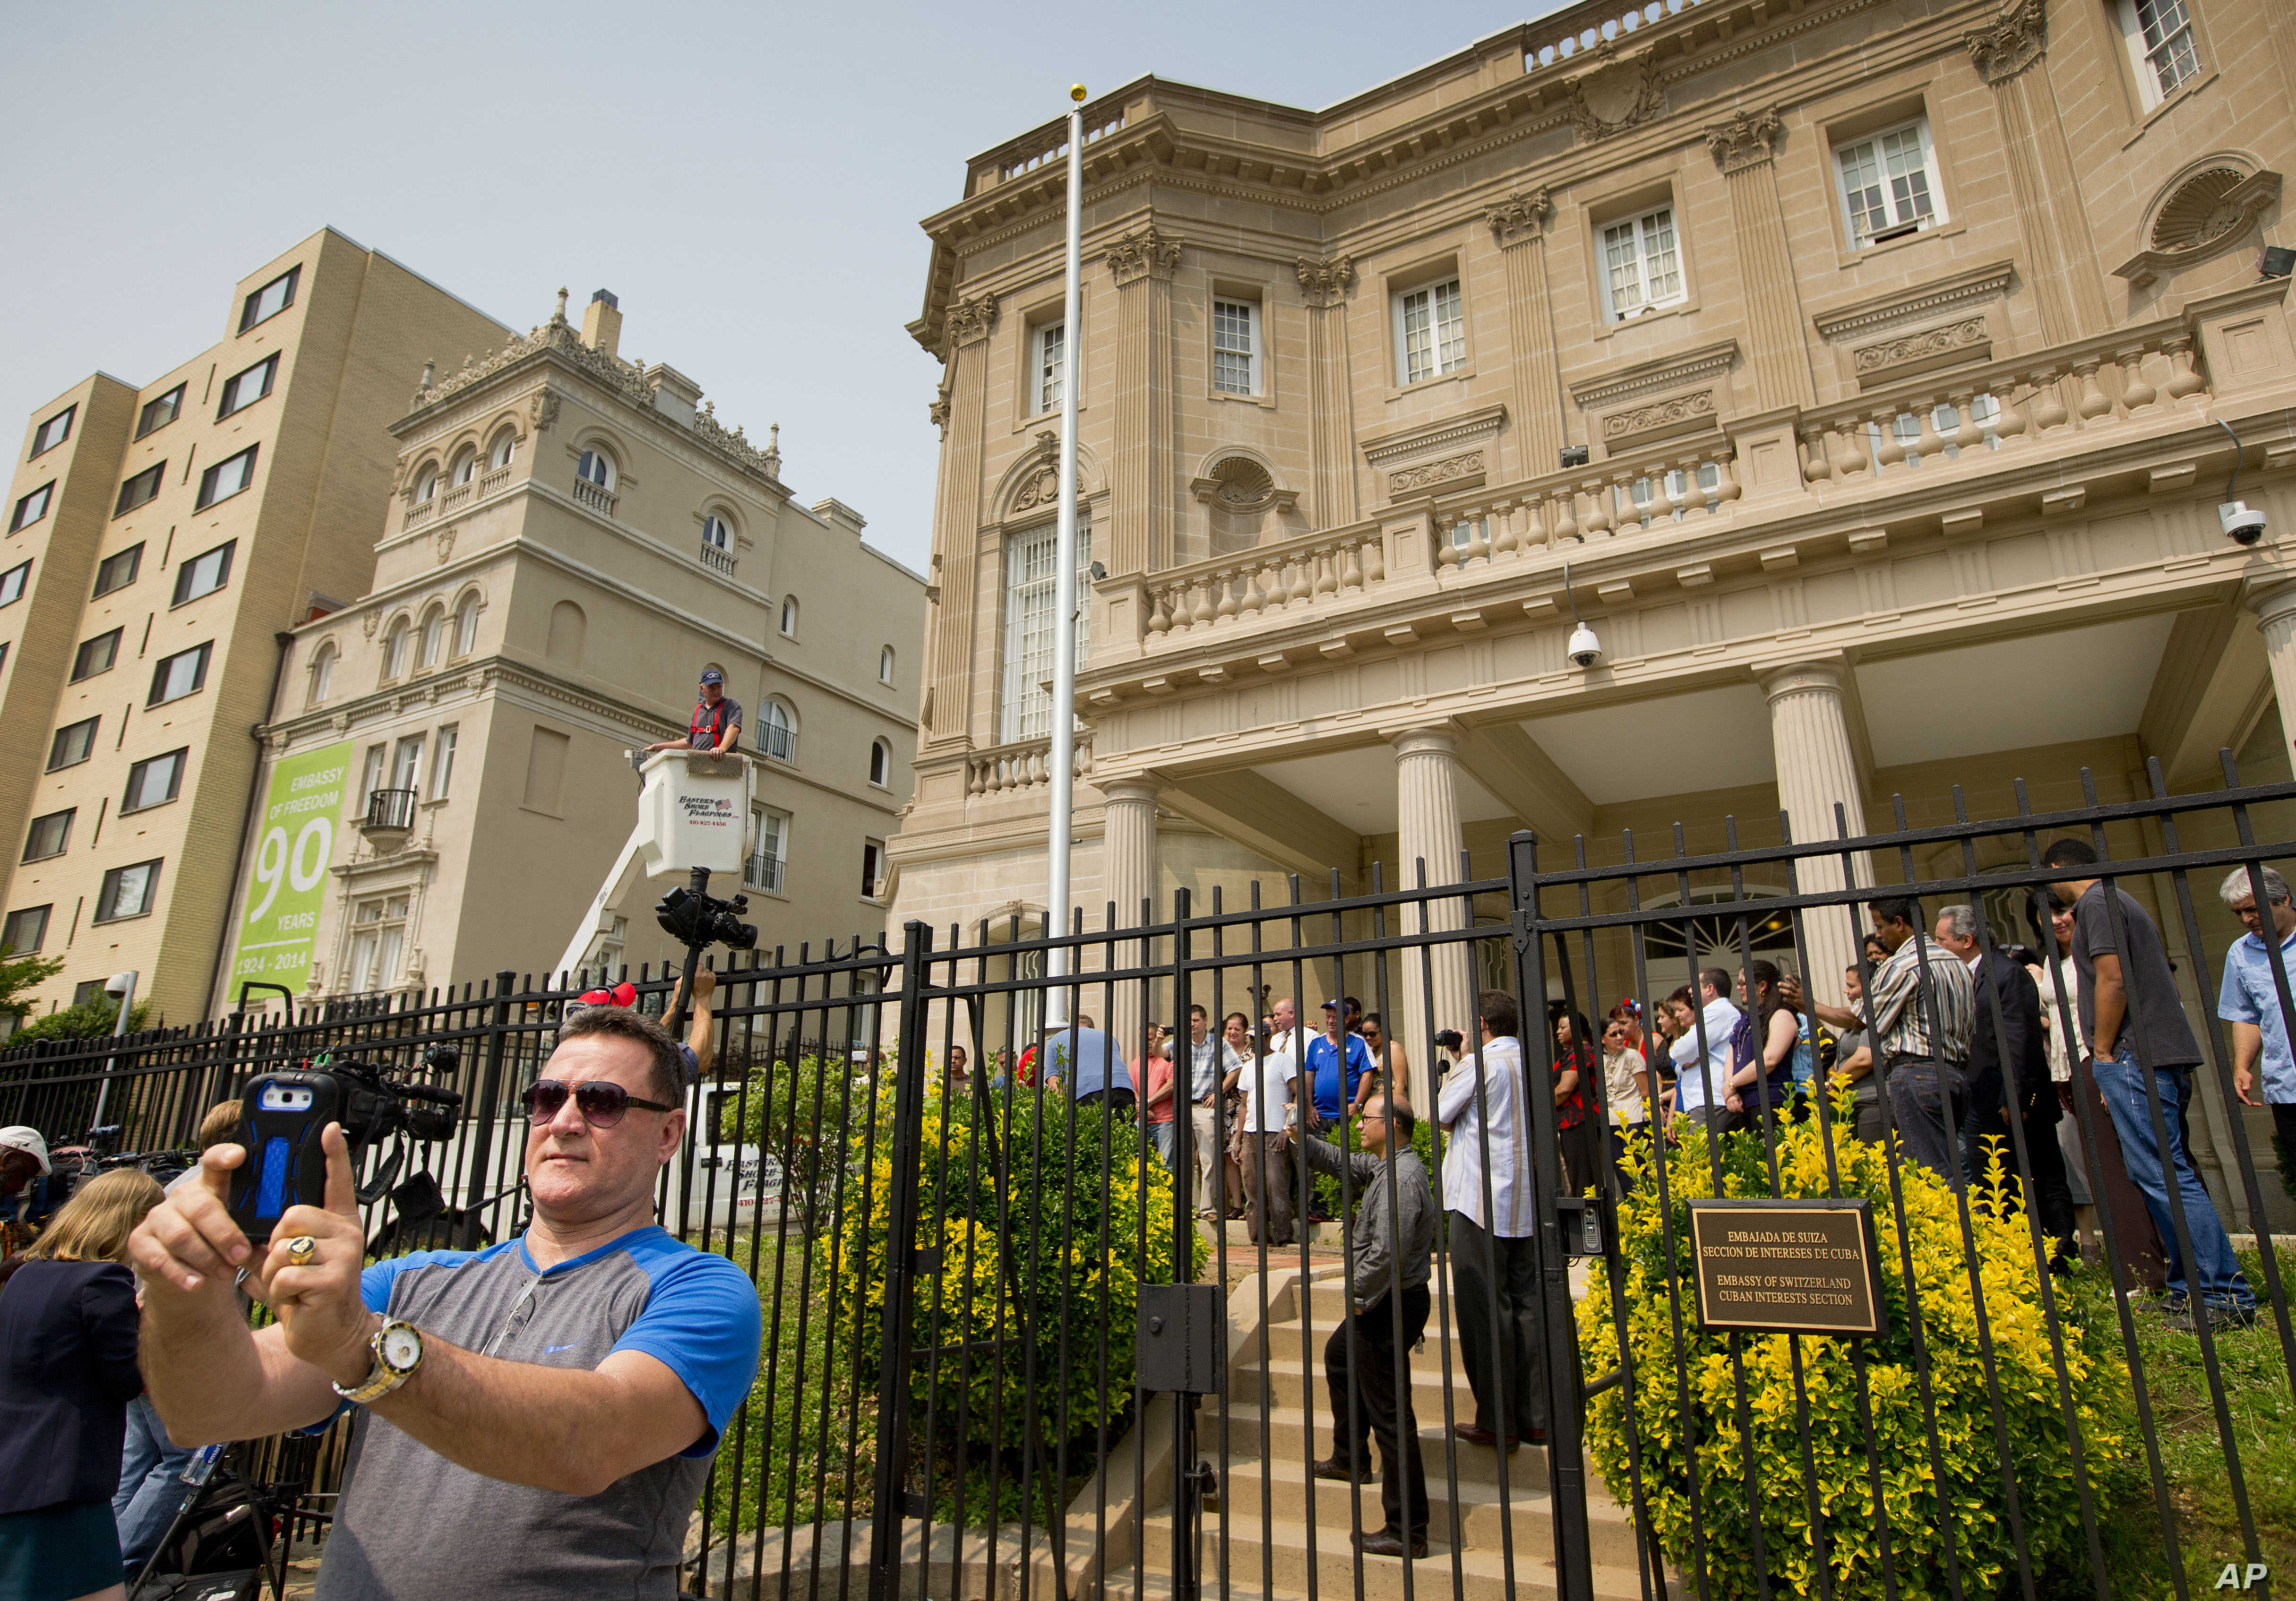 Fernando Rodriguez, left, uses his cellphone to take a selfie as workers from Eastern Shores Flagpoles raise a flagpole at the Cuban Interest Section in Washington in preparation for re-opening of embassies in Havana and Washington, June 10, 2015.